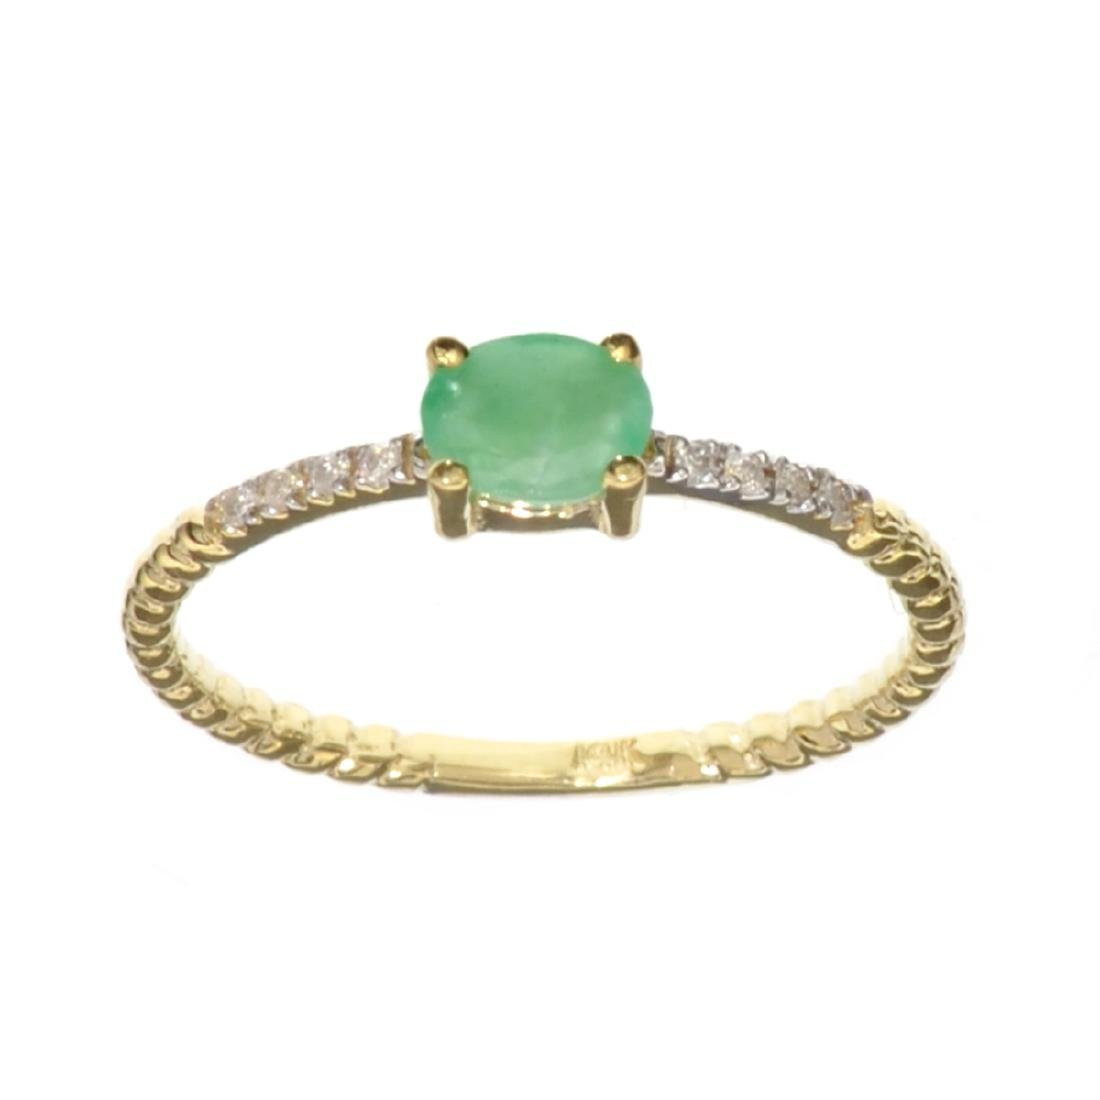 APP: 0.6k Fine Jewelry 14KT Gold, 0.21CT Green Emerald